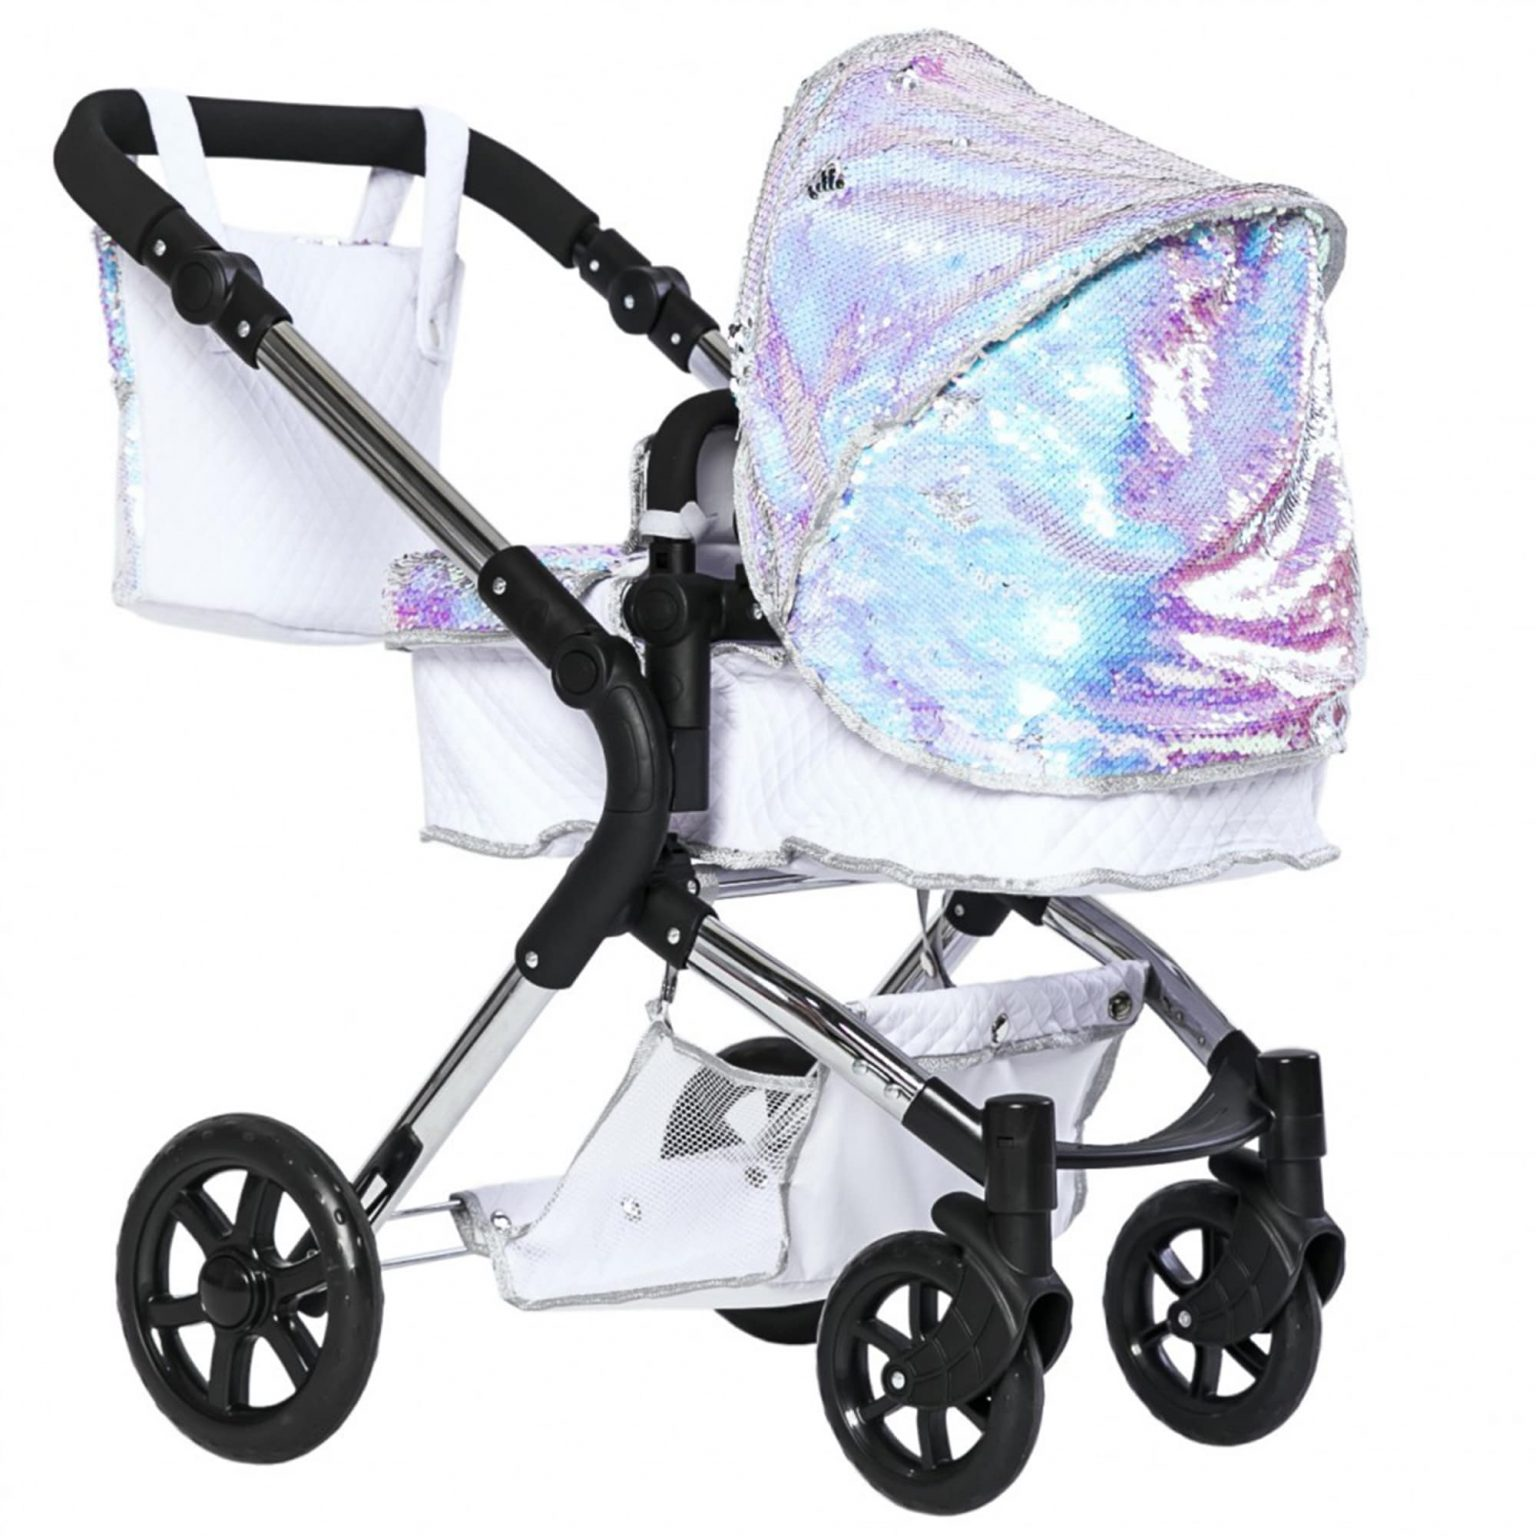 Roma Polly Amy Childs Single Dolls Pram Mary Shortle